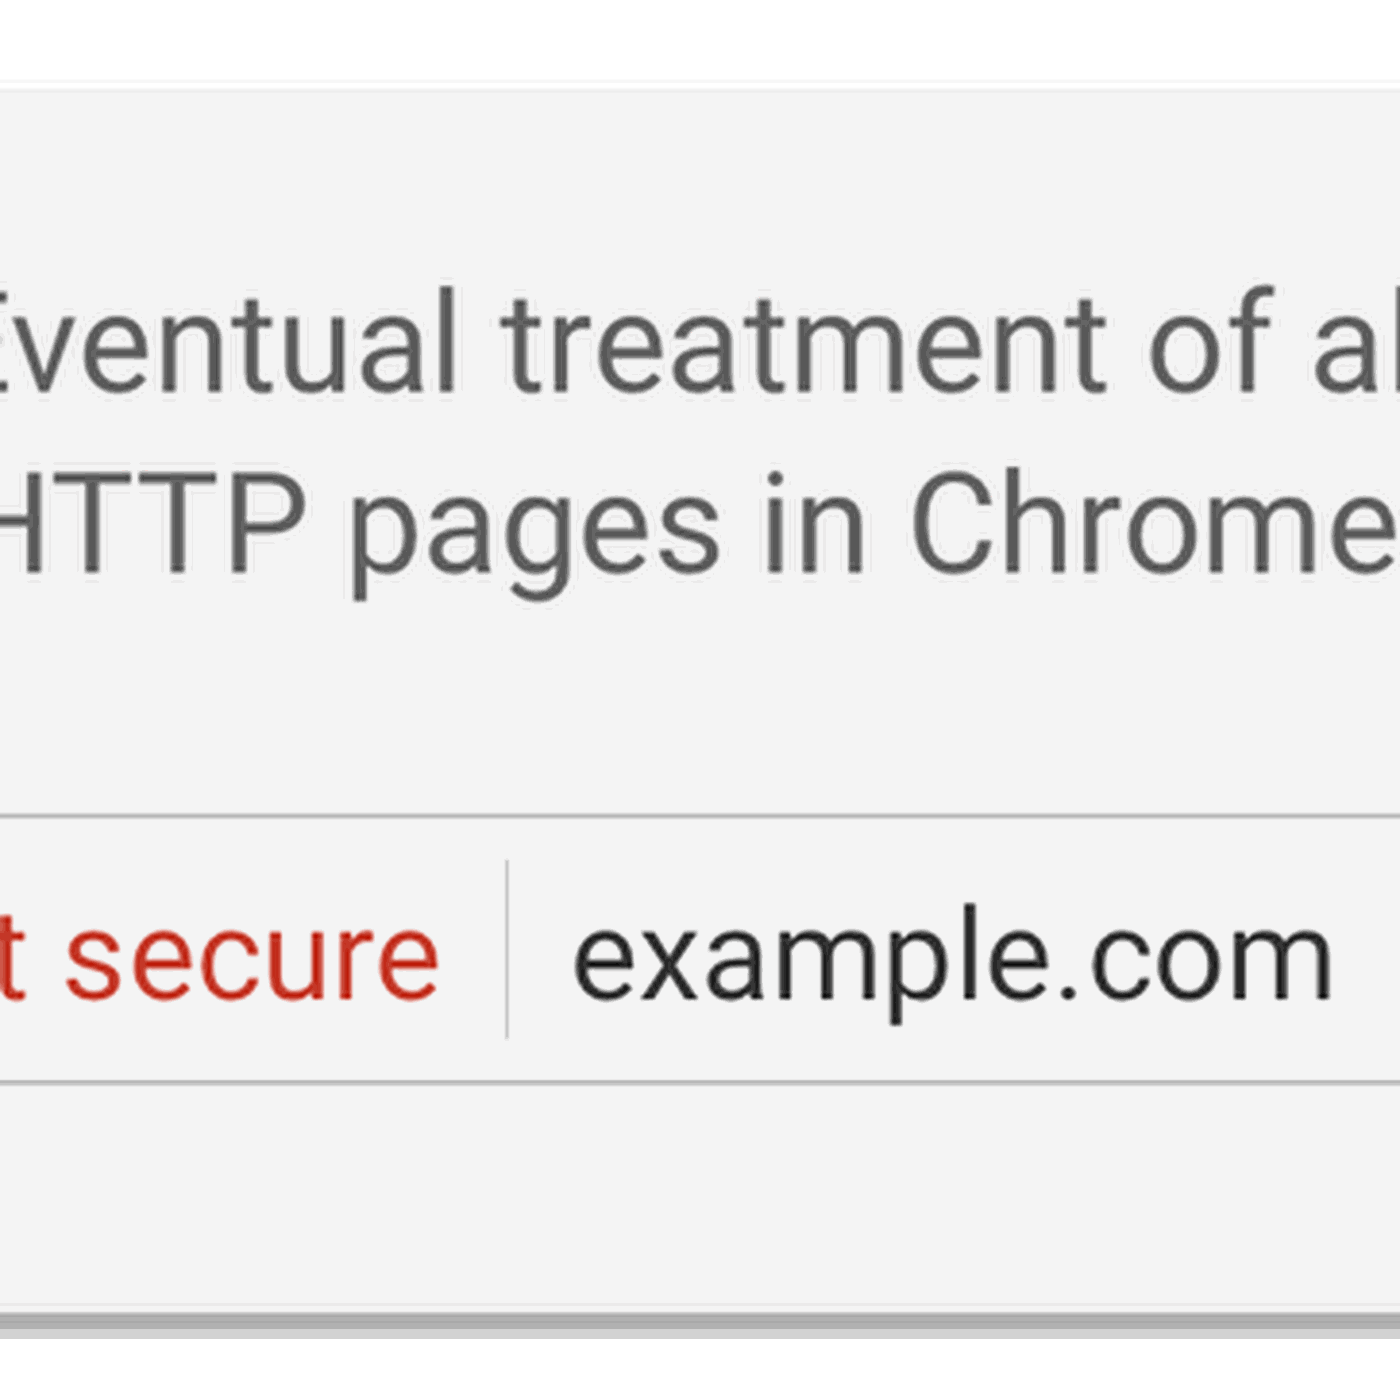 Google Chrome is removing the secure indicator from HTTPS